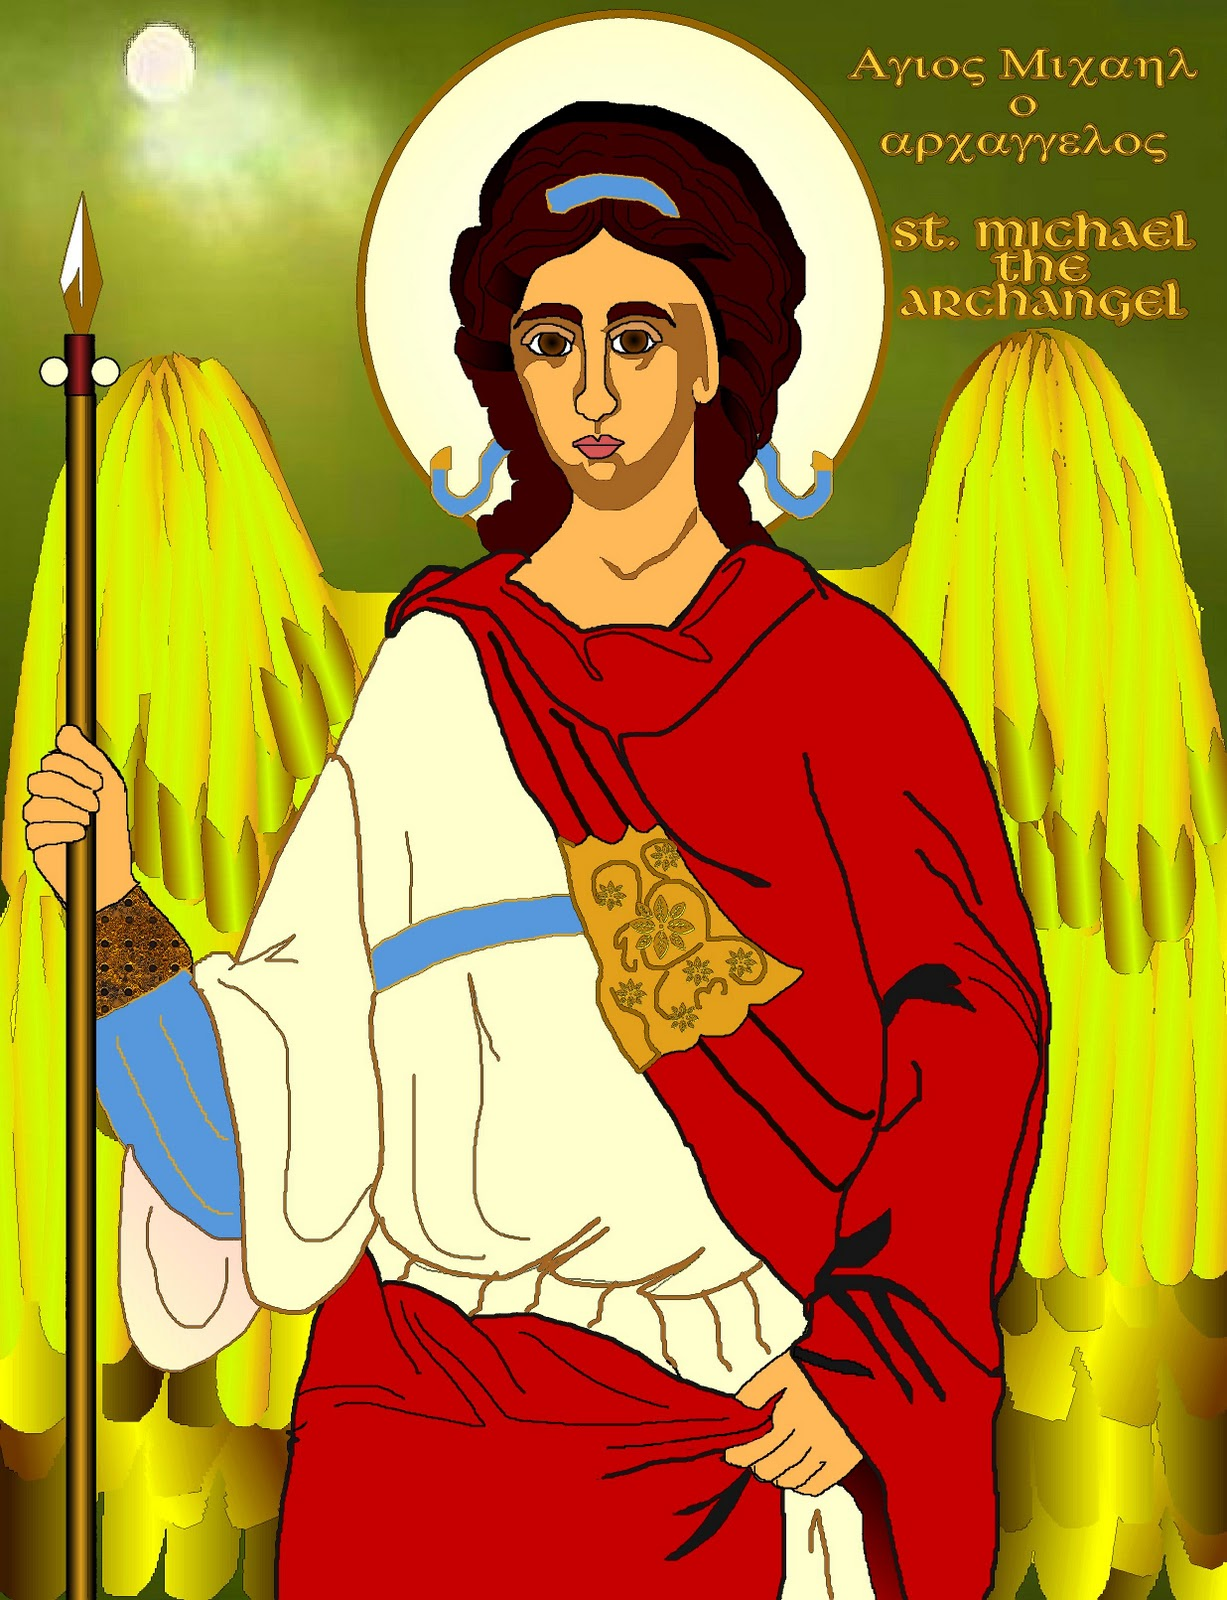 St. Michael the Archangel Drawings